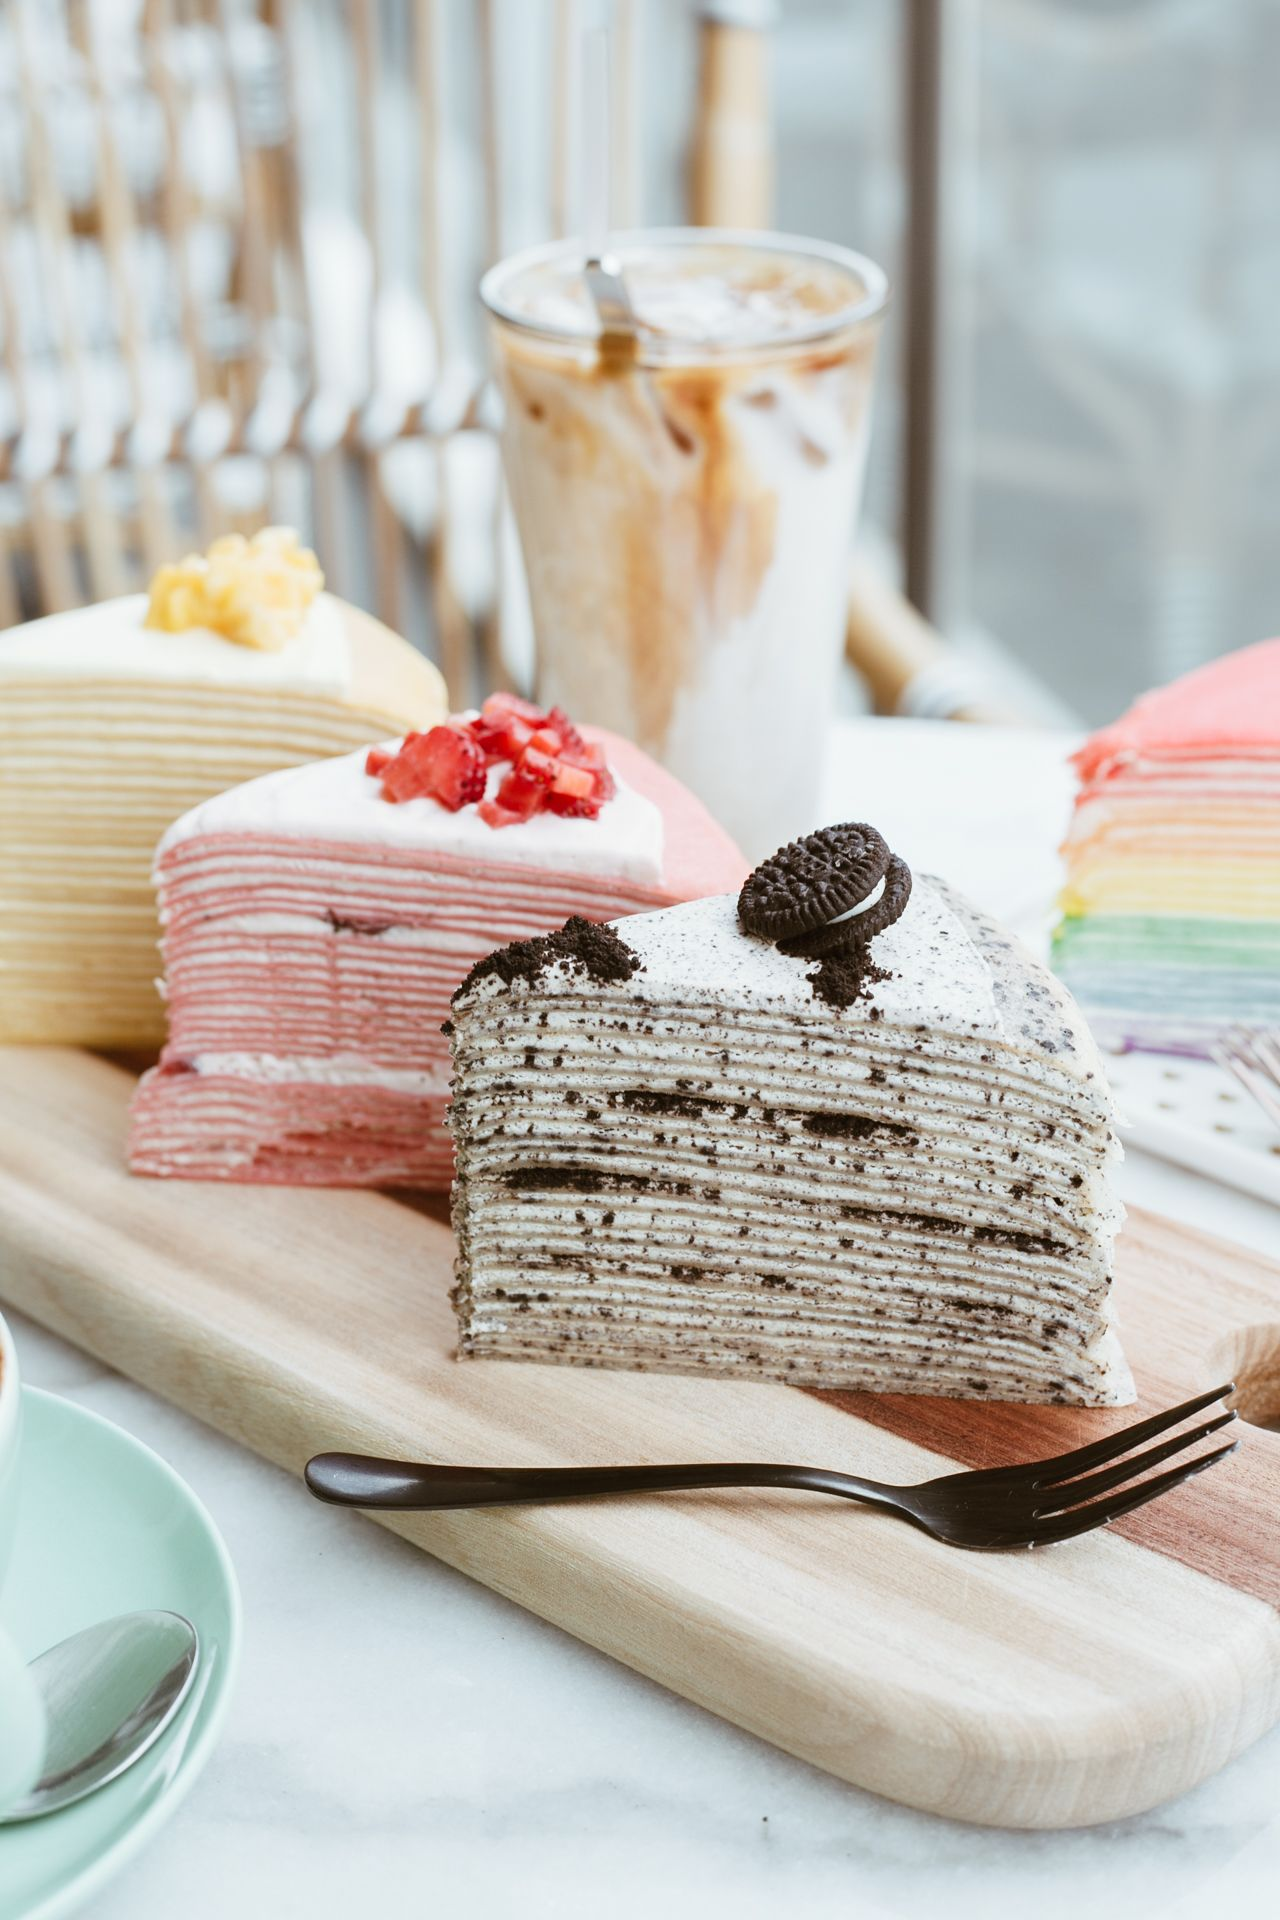 Rainbow Crepe Cakes now in Town — MUSINGS OF LI CH